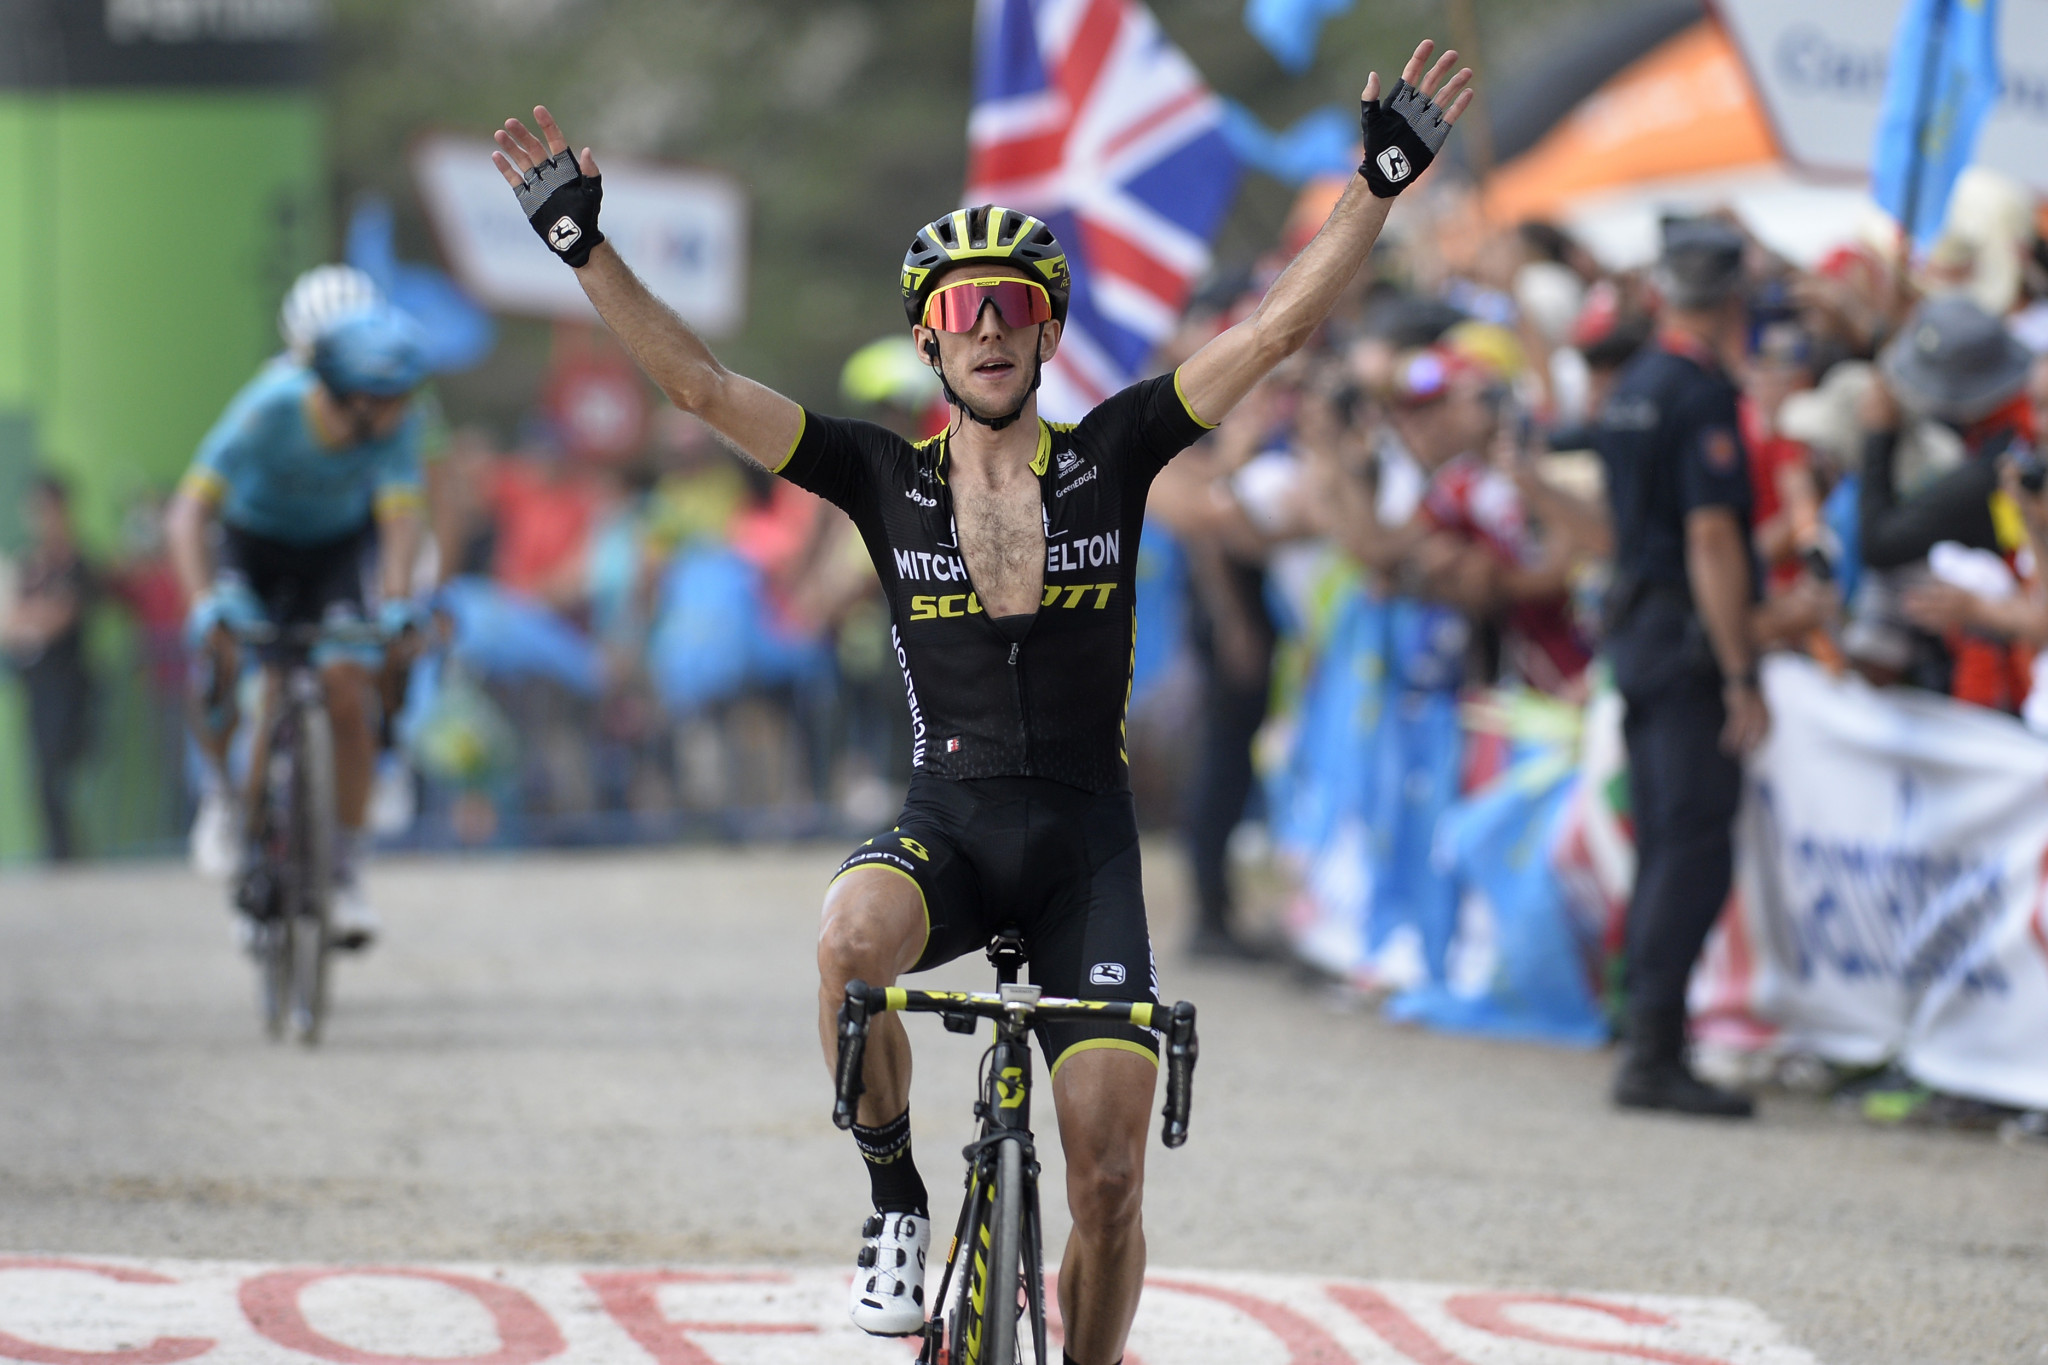 Yates assumes Vuelta a España race lead by winning stage 14